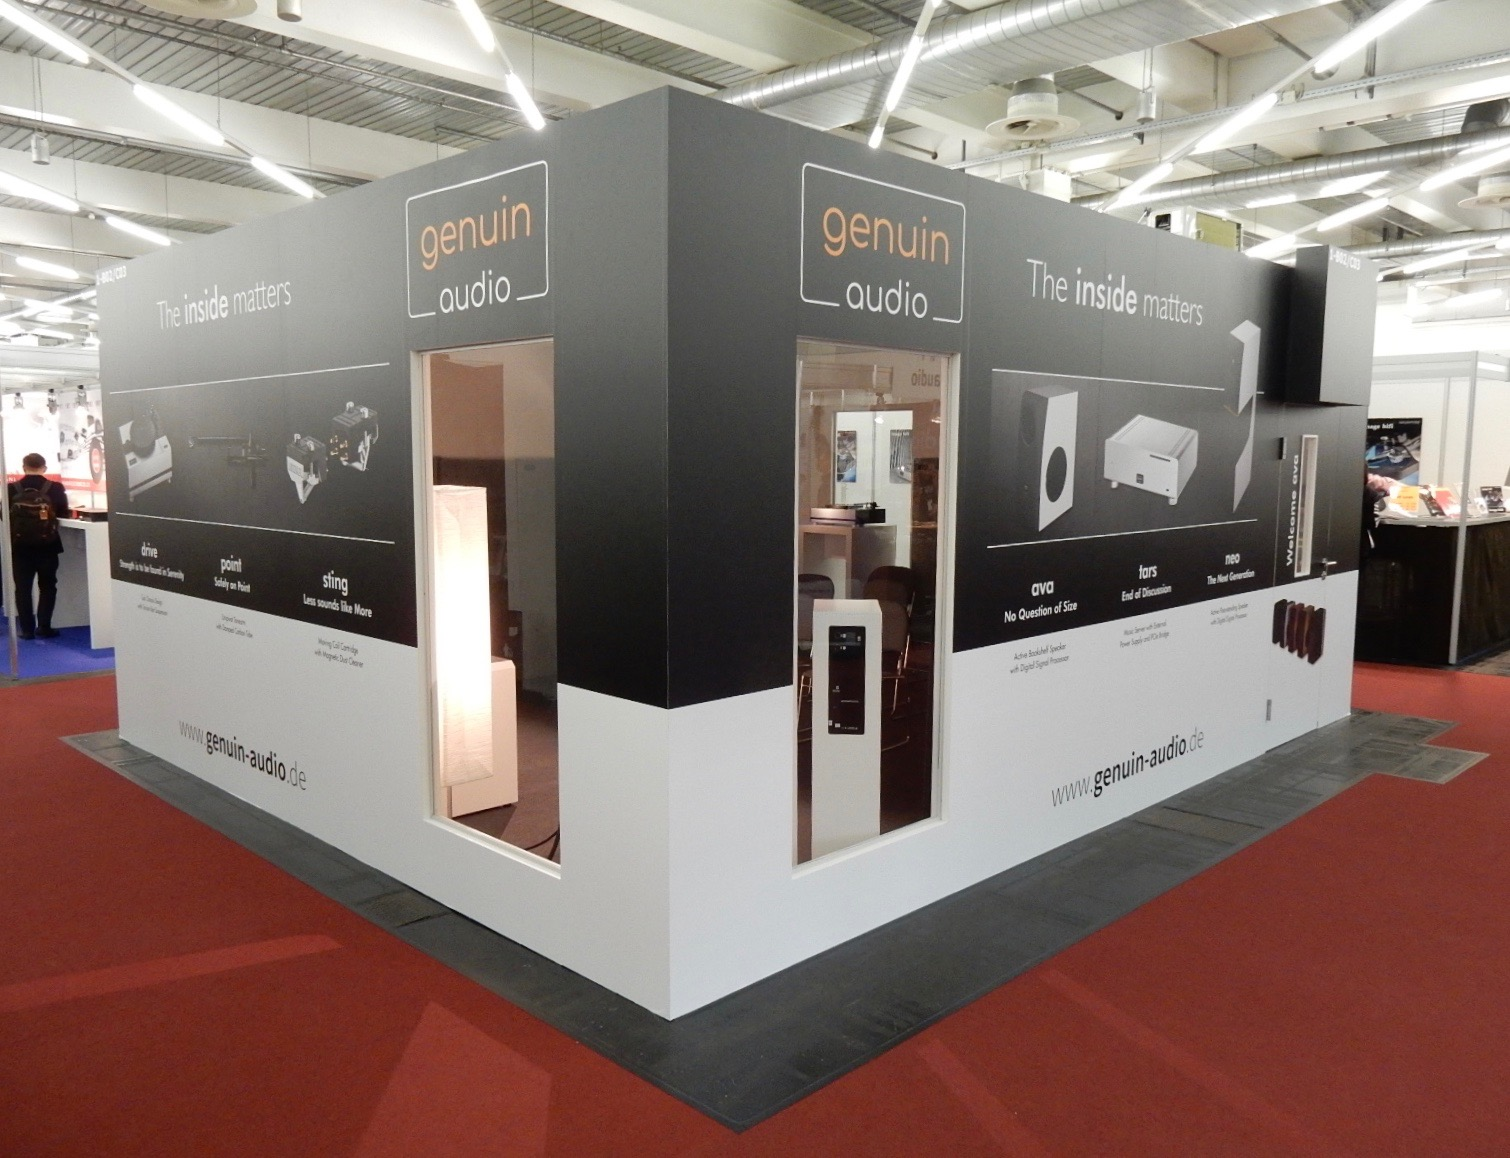 Audio Trade Shows - genuin audio